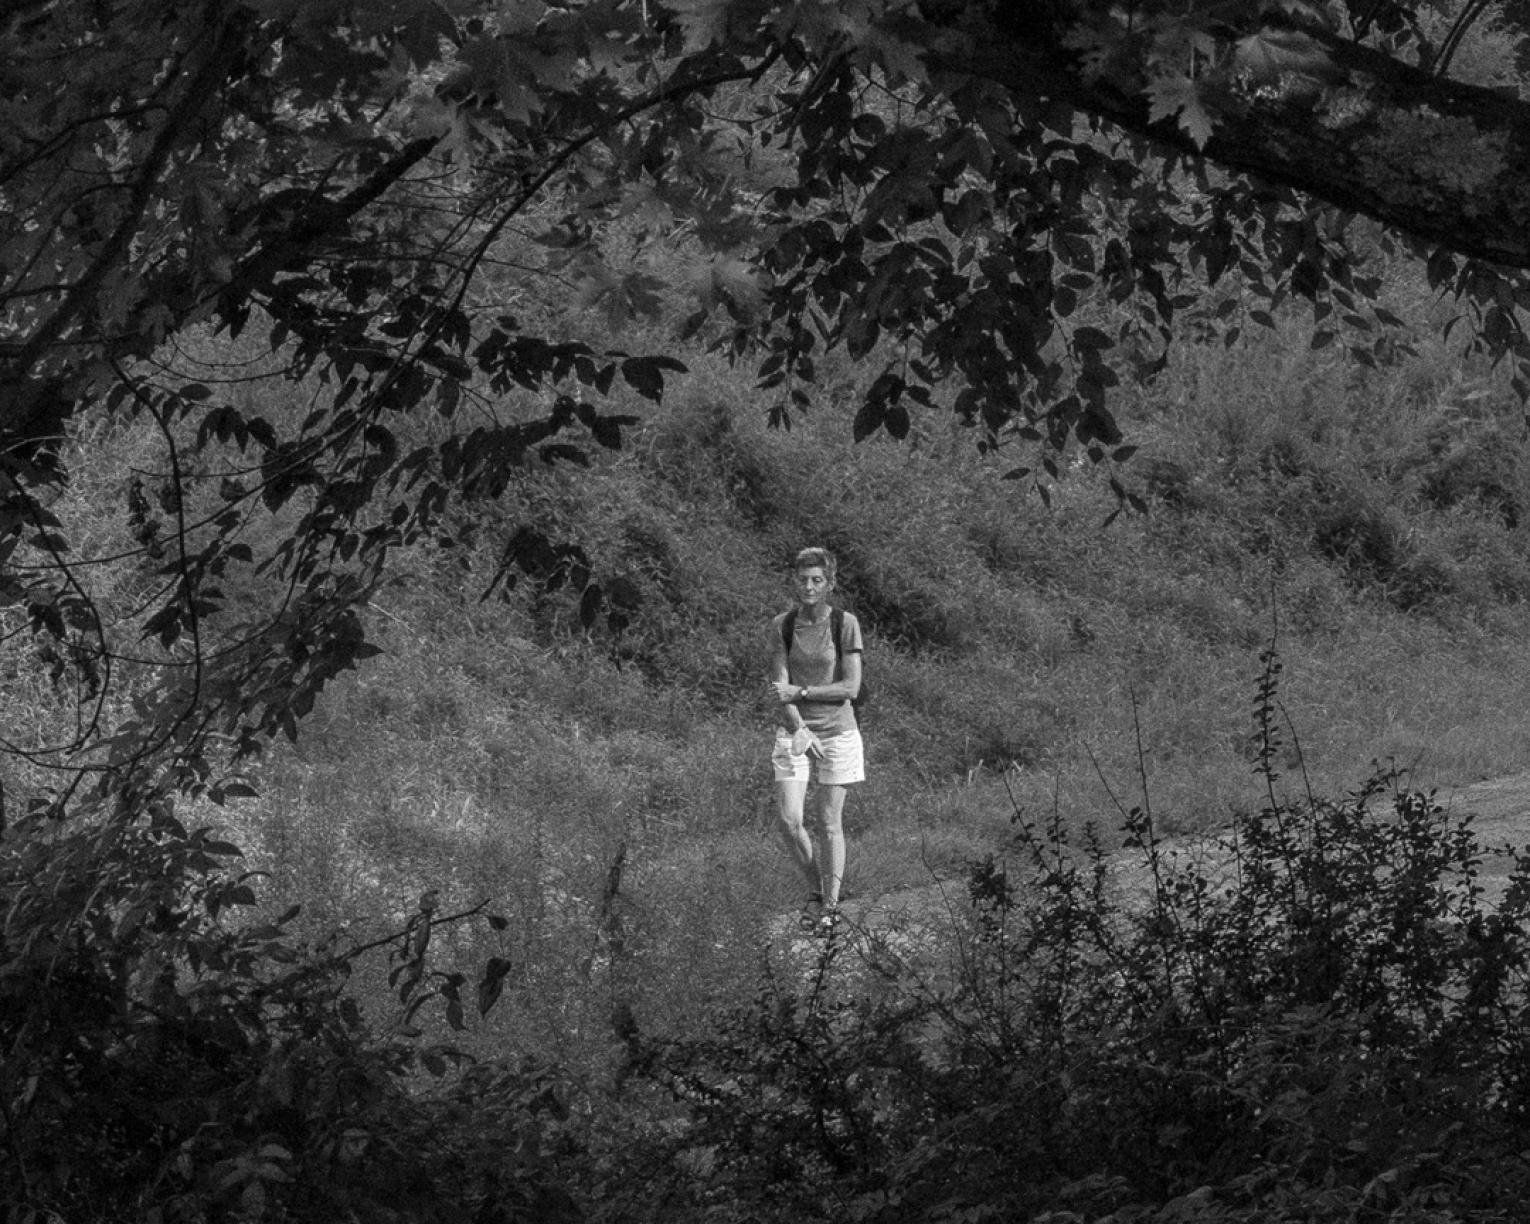 Black and white photo of woman in shorts walking alone on a gravel road; she grasps her arm with her hand